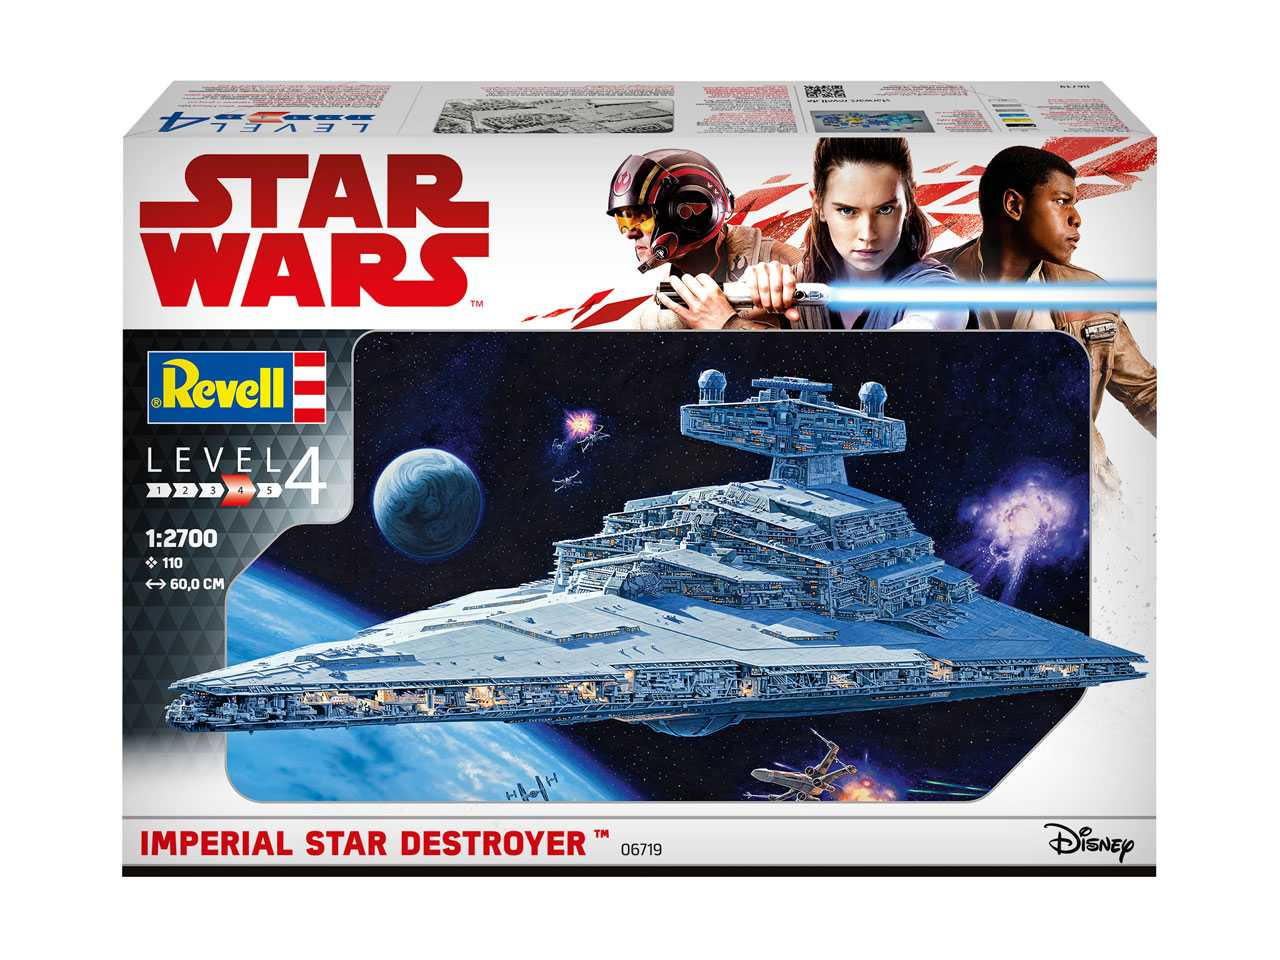 1:2700 Imperial Star Destroyer (Star Wars)